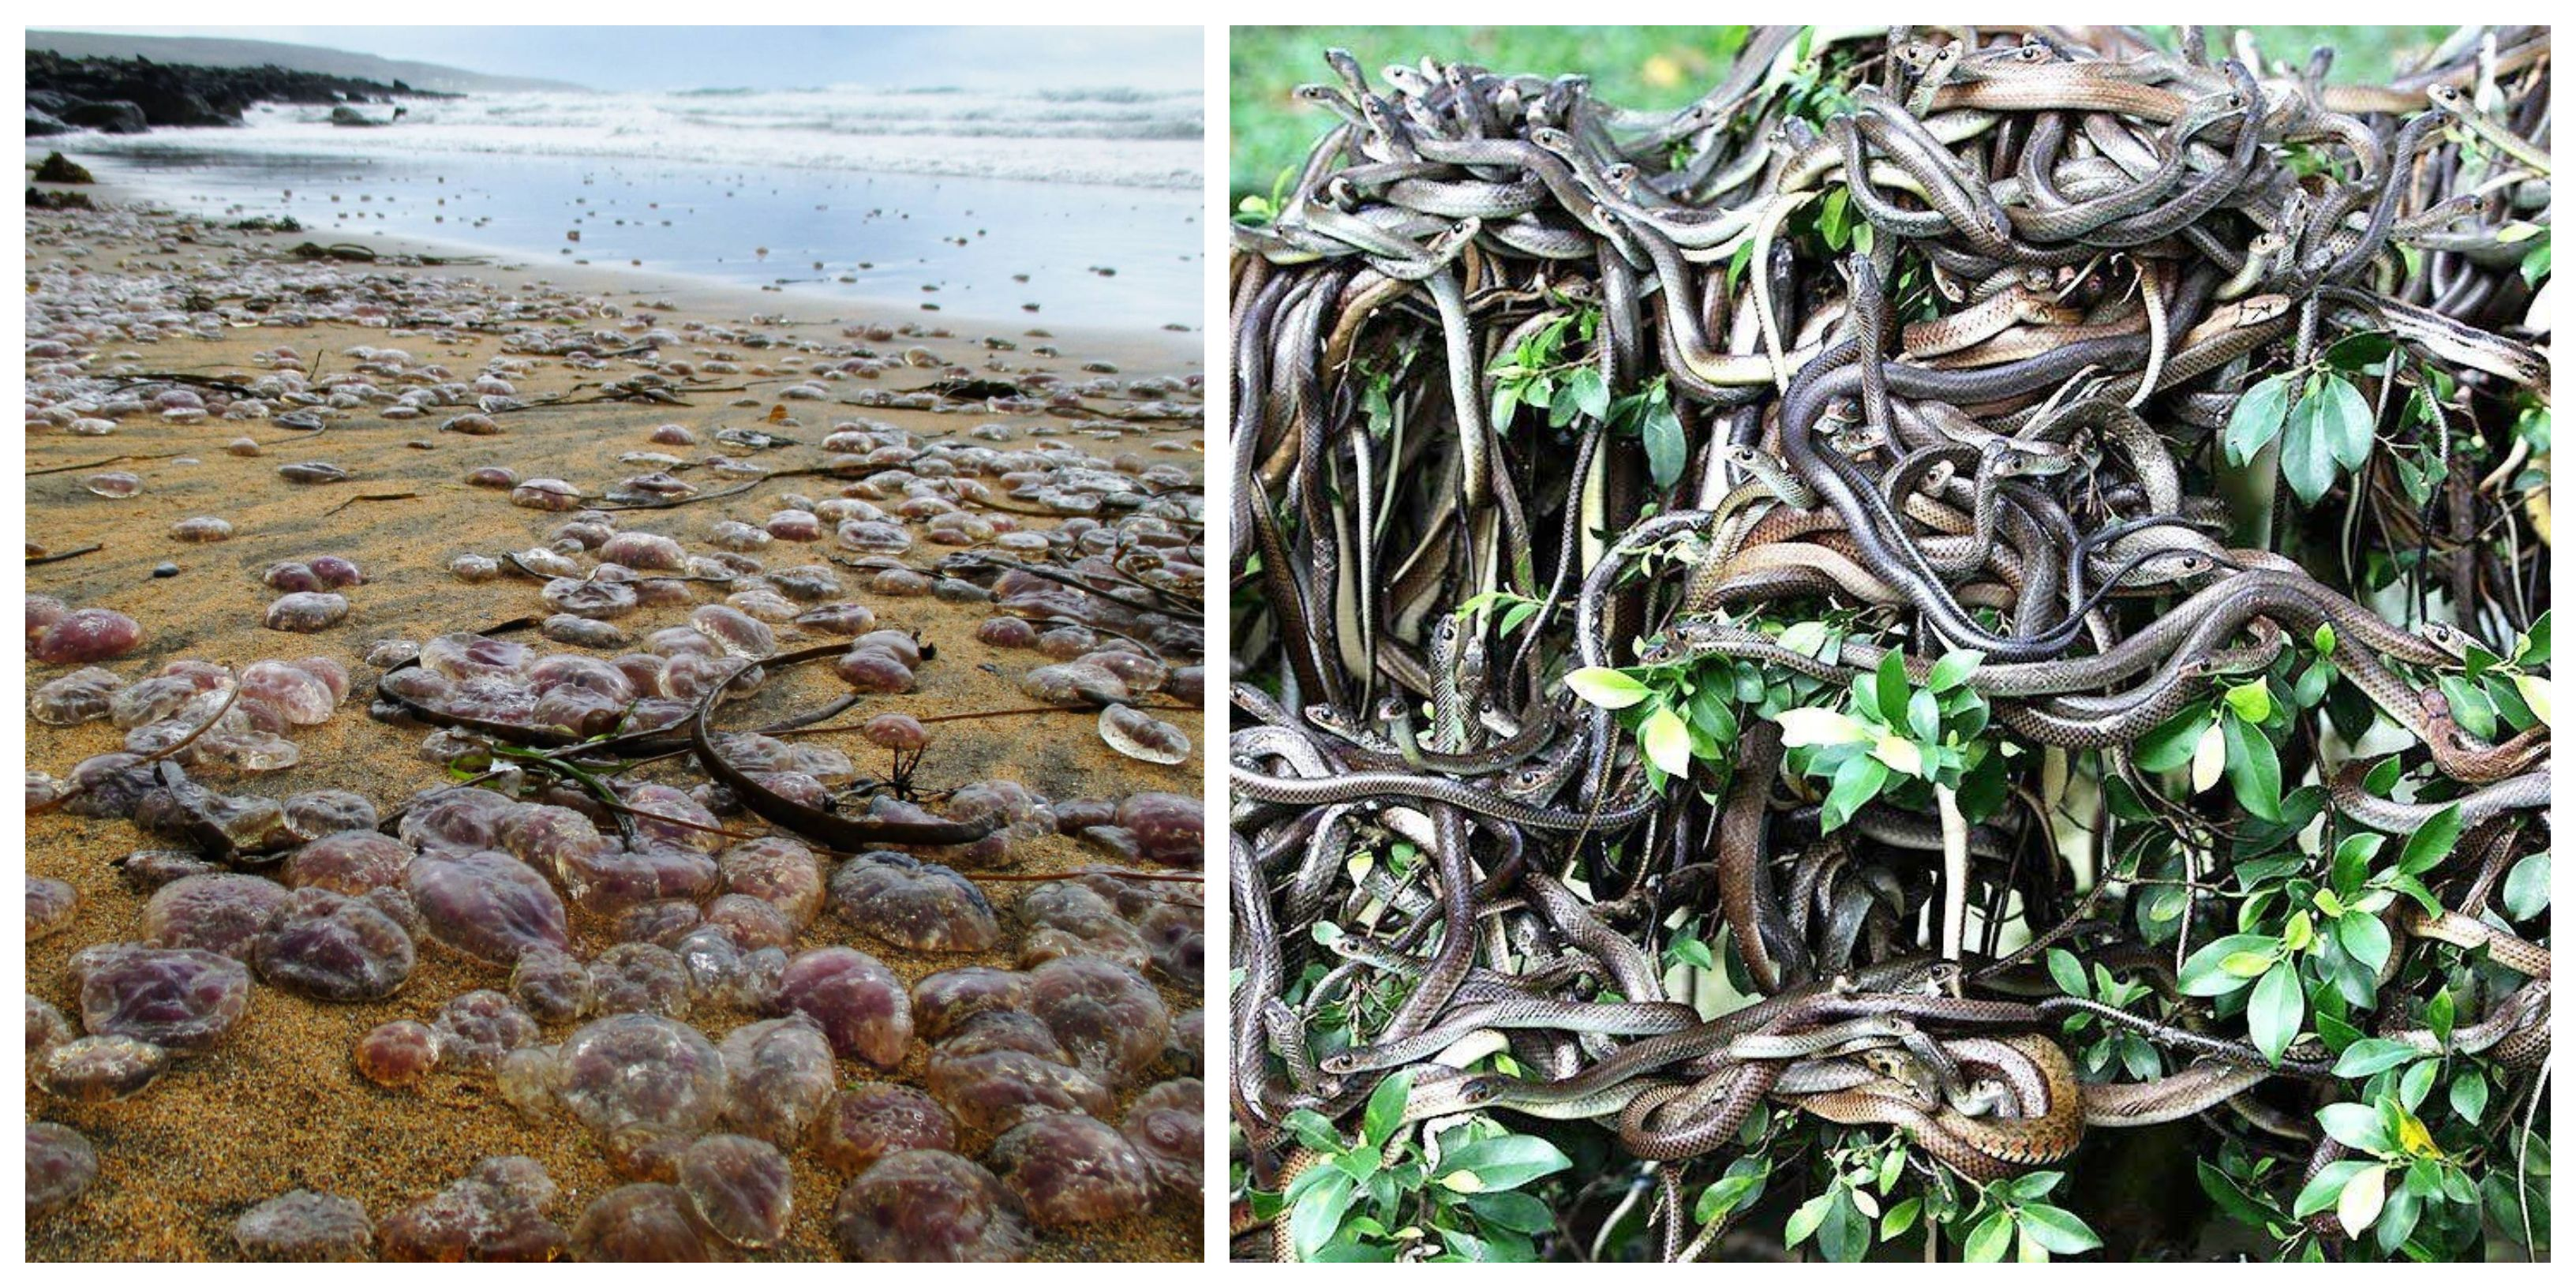 10 Beaches Crawling With Strange Creatures (10 Beaches That Are